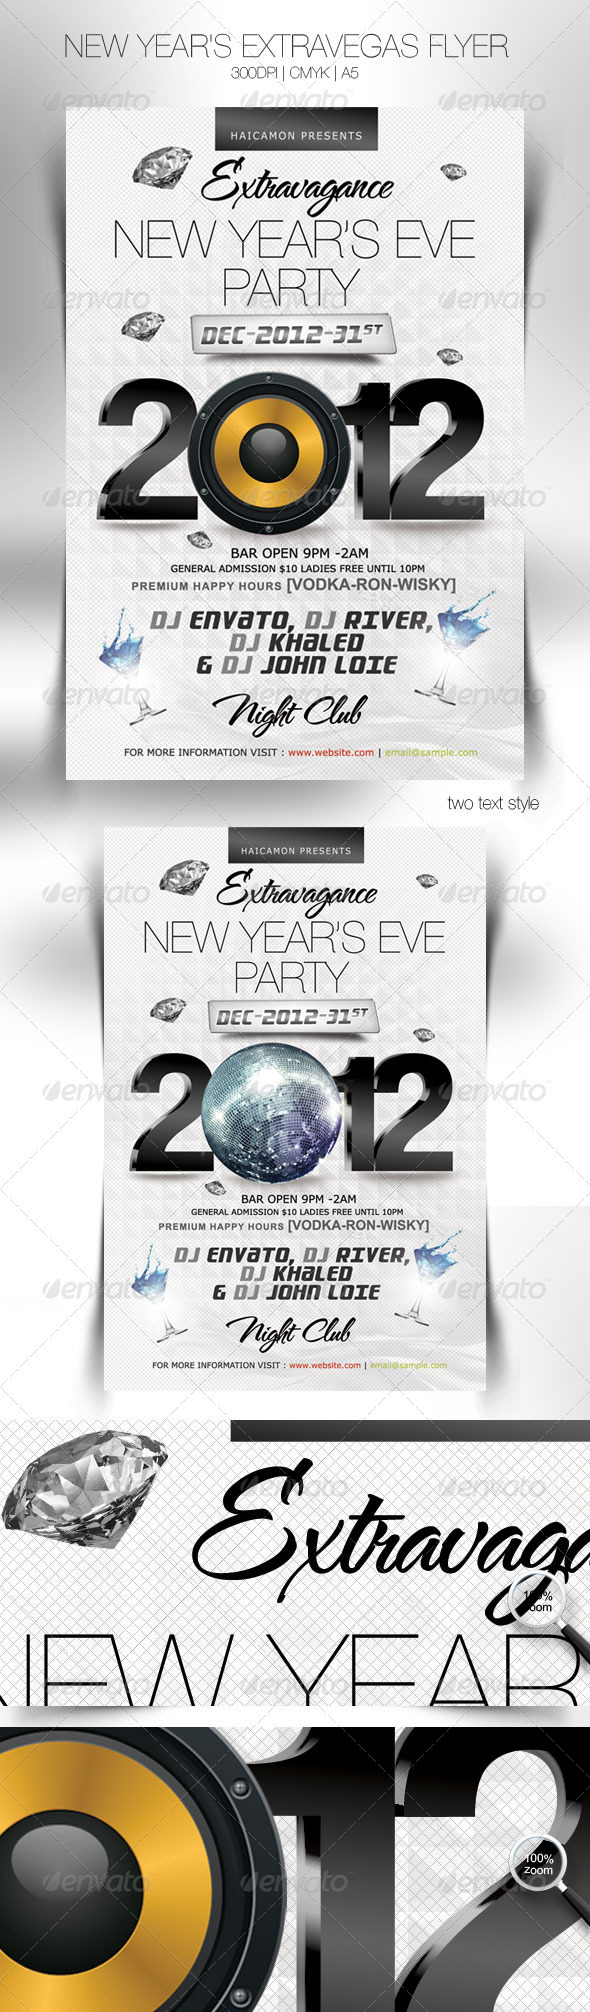 GraphicRiver New Year s Extravegas Party Flyer 1142486